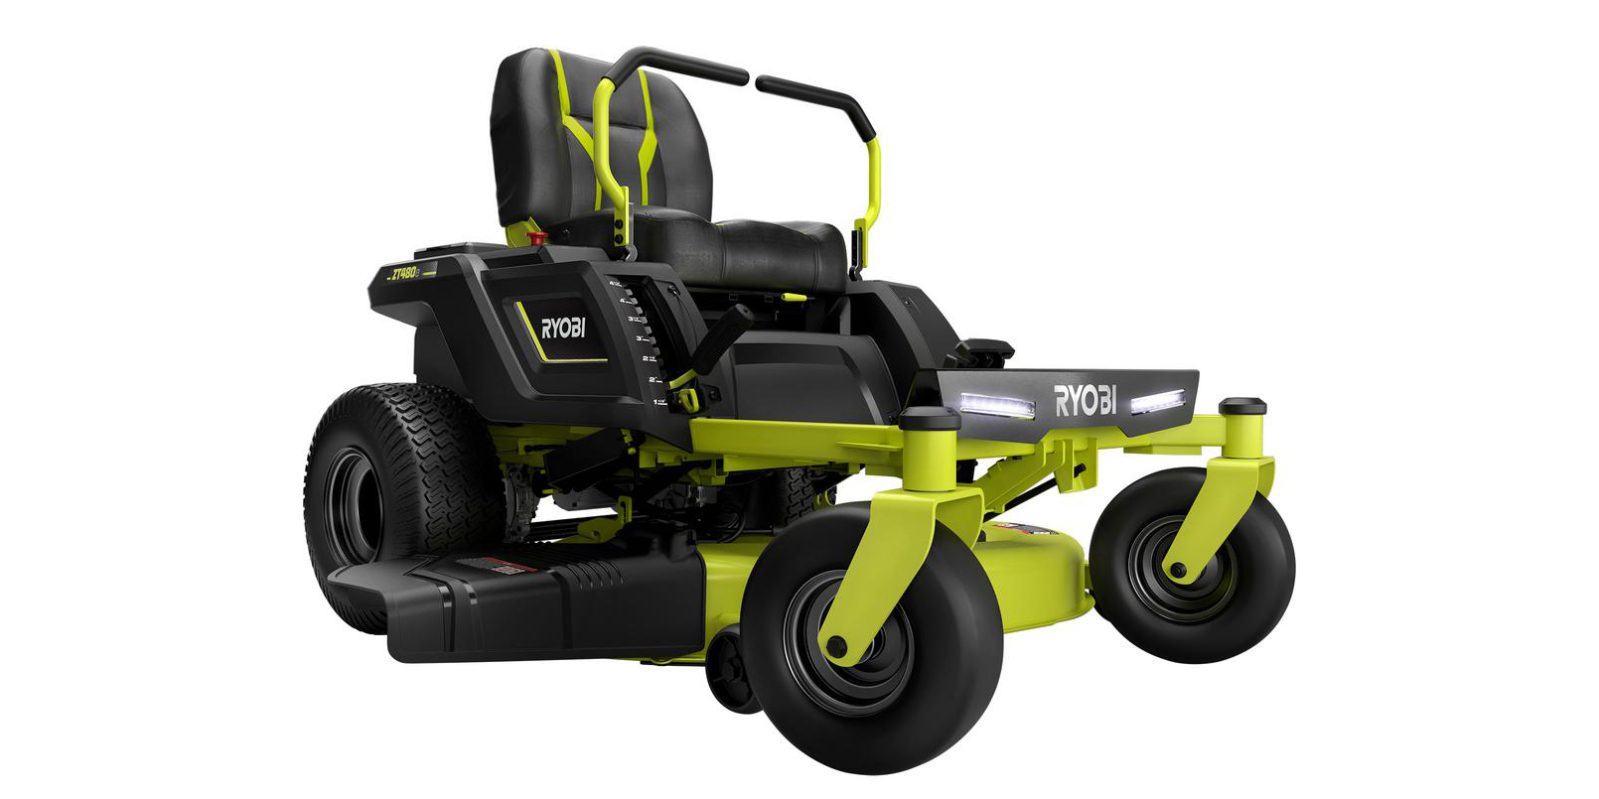 c1a644be5b3 Home Depot offers the Ryobi 42-inch 75Ah Electric Zero Turn Riding Lawn  Mower for  3